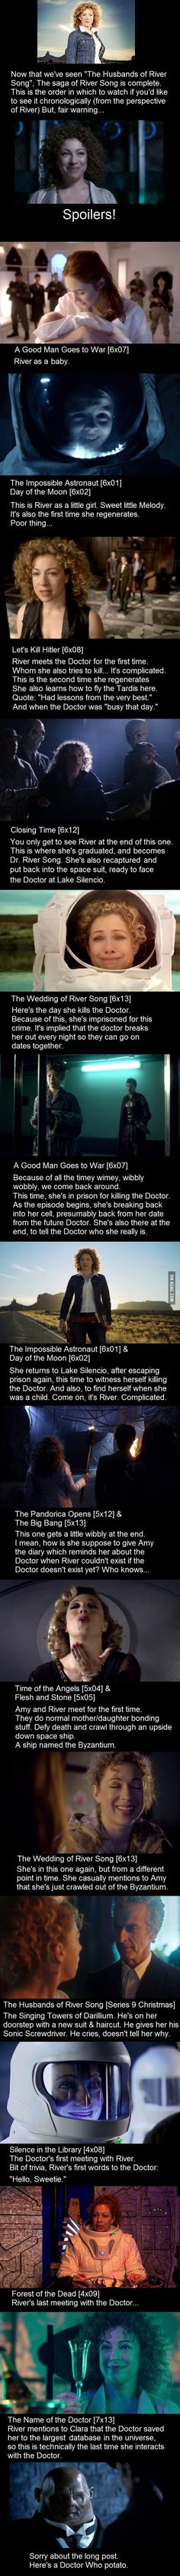 River Song's Timeline. Watch in this order if you'd like to see River's journey in Doctor Who. @mft !!! The list! In order!